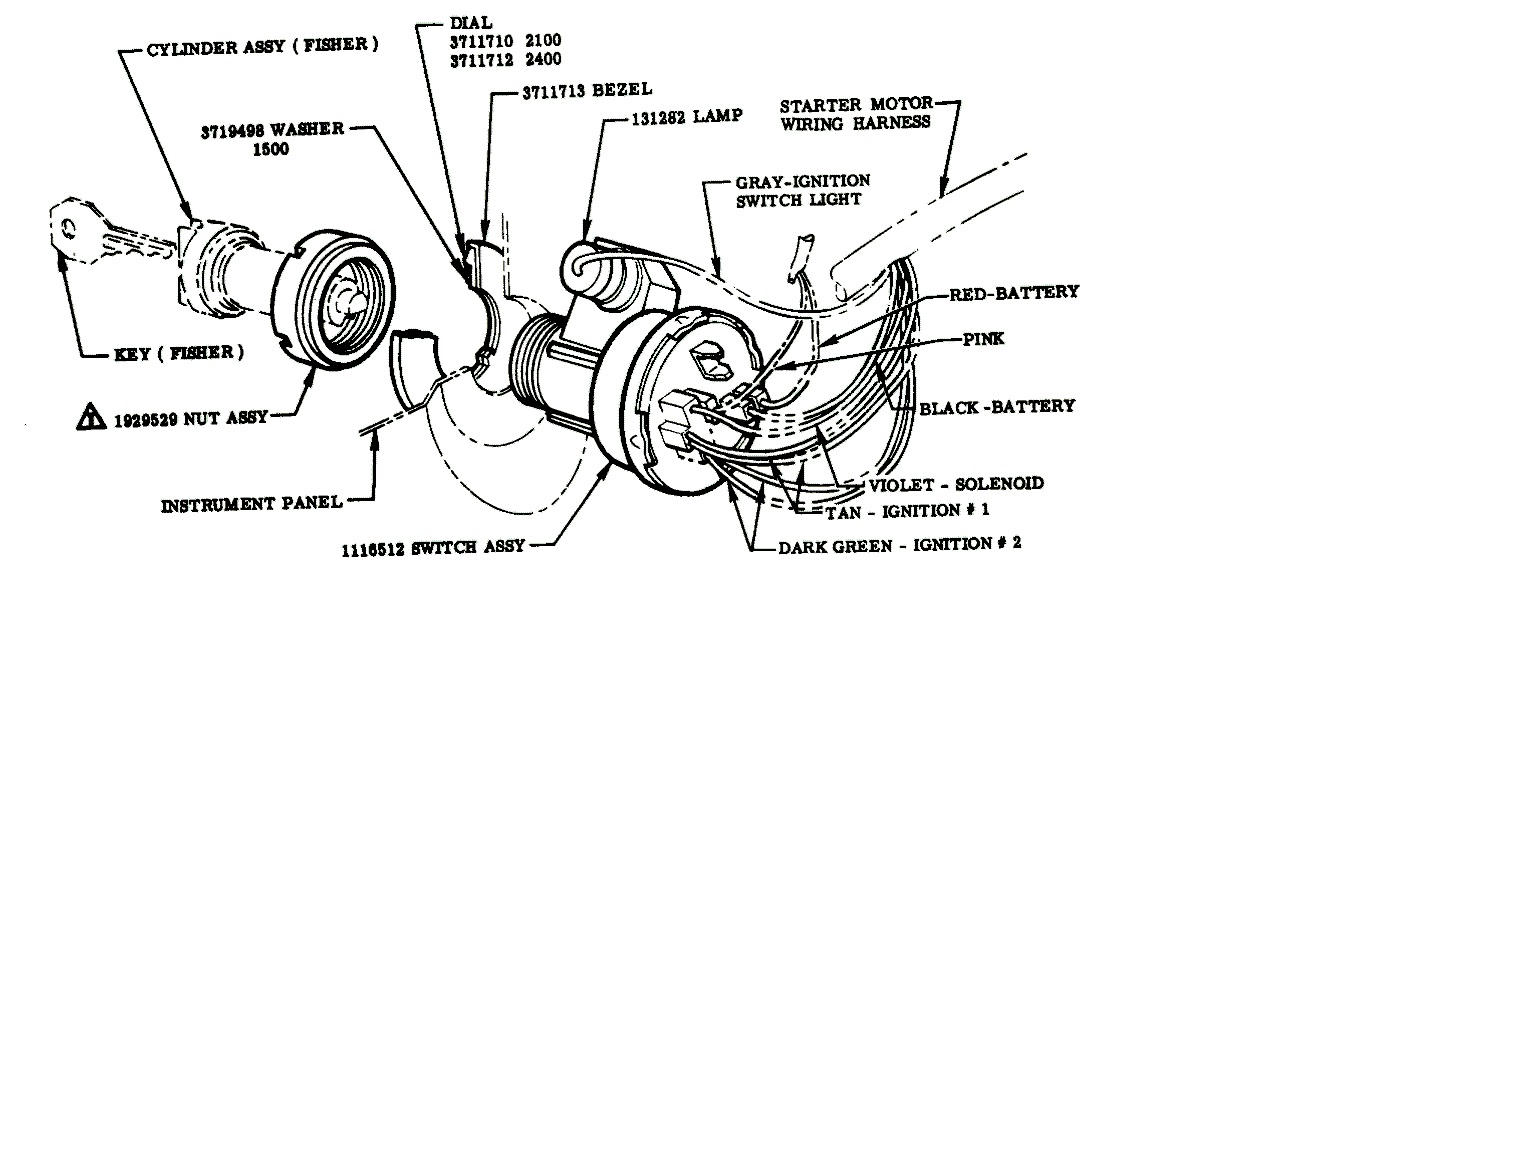 Gm Headlight Switch Wiring Diagram 1953 Opinions About 1956 Ford Car 56 Chev Dimmer Trusted Rh Dafpods Co Chevy Basic